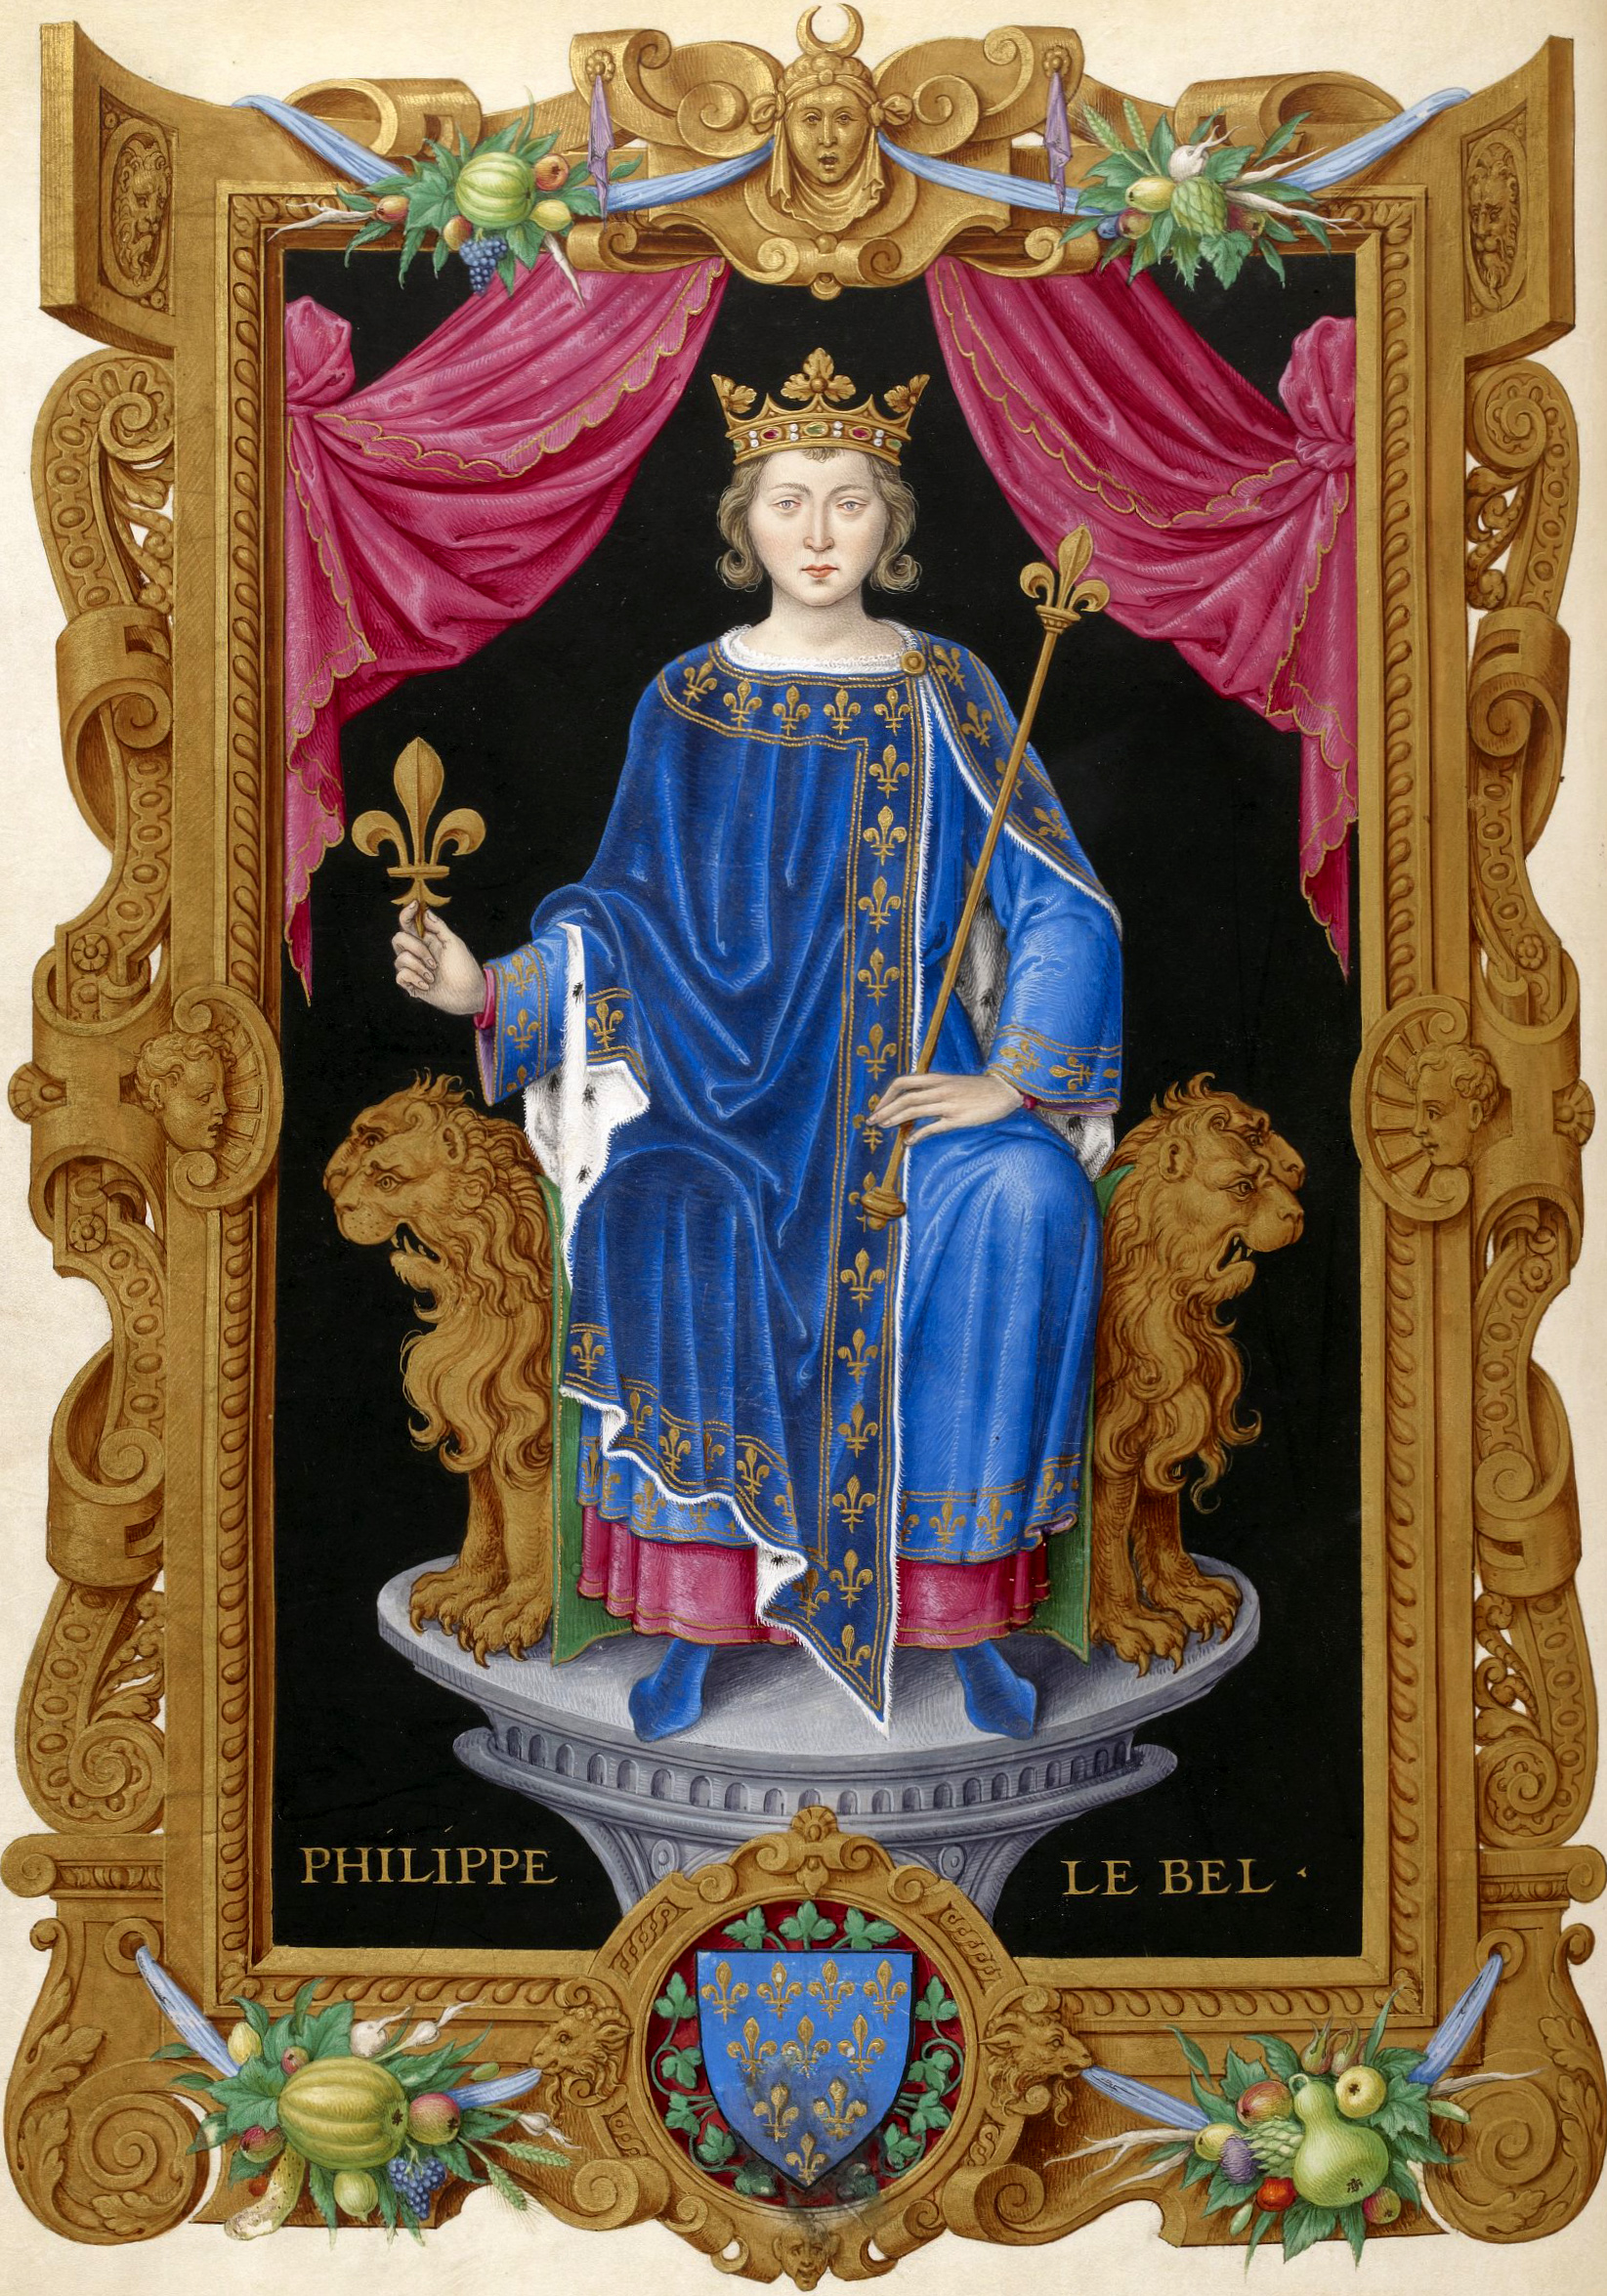 Philippe IV le Bel From Recueil des rois de France, by Jean Du Tillet (16th century).